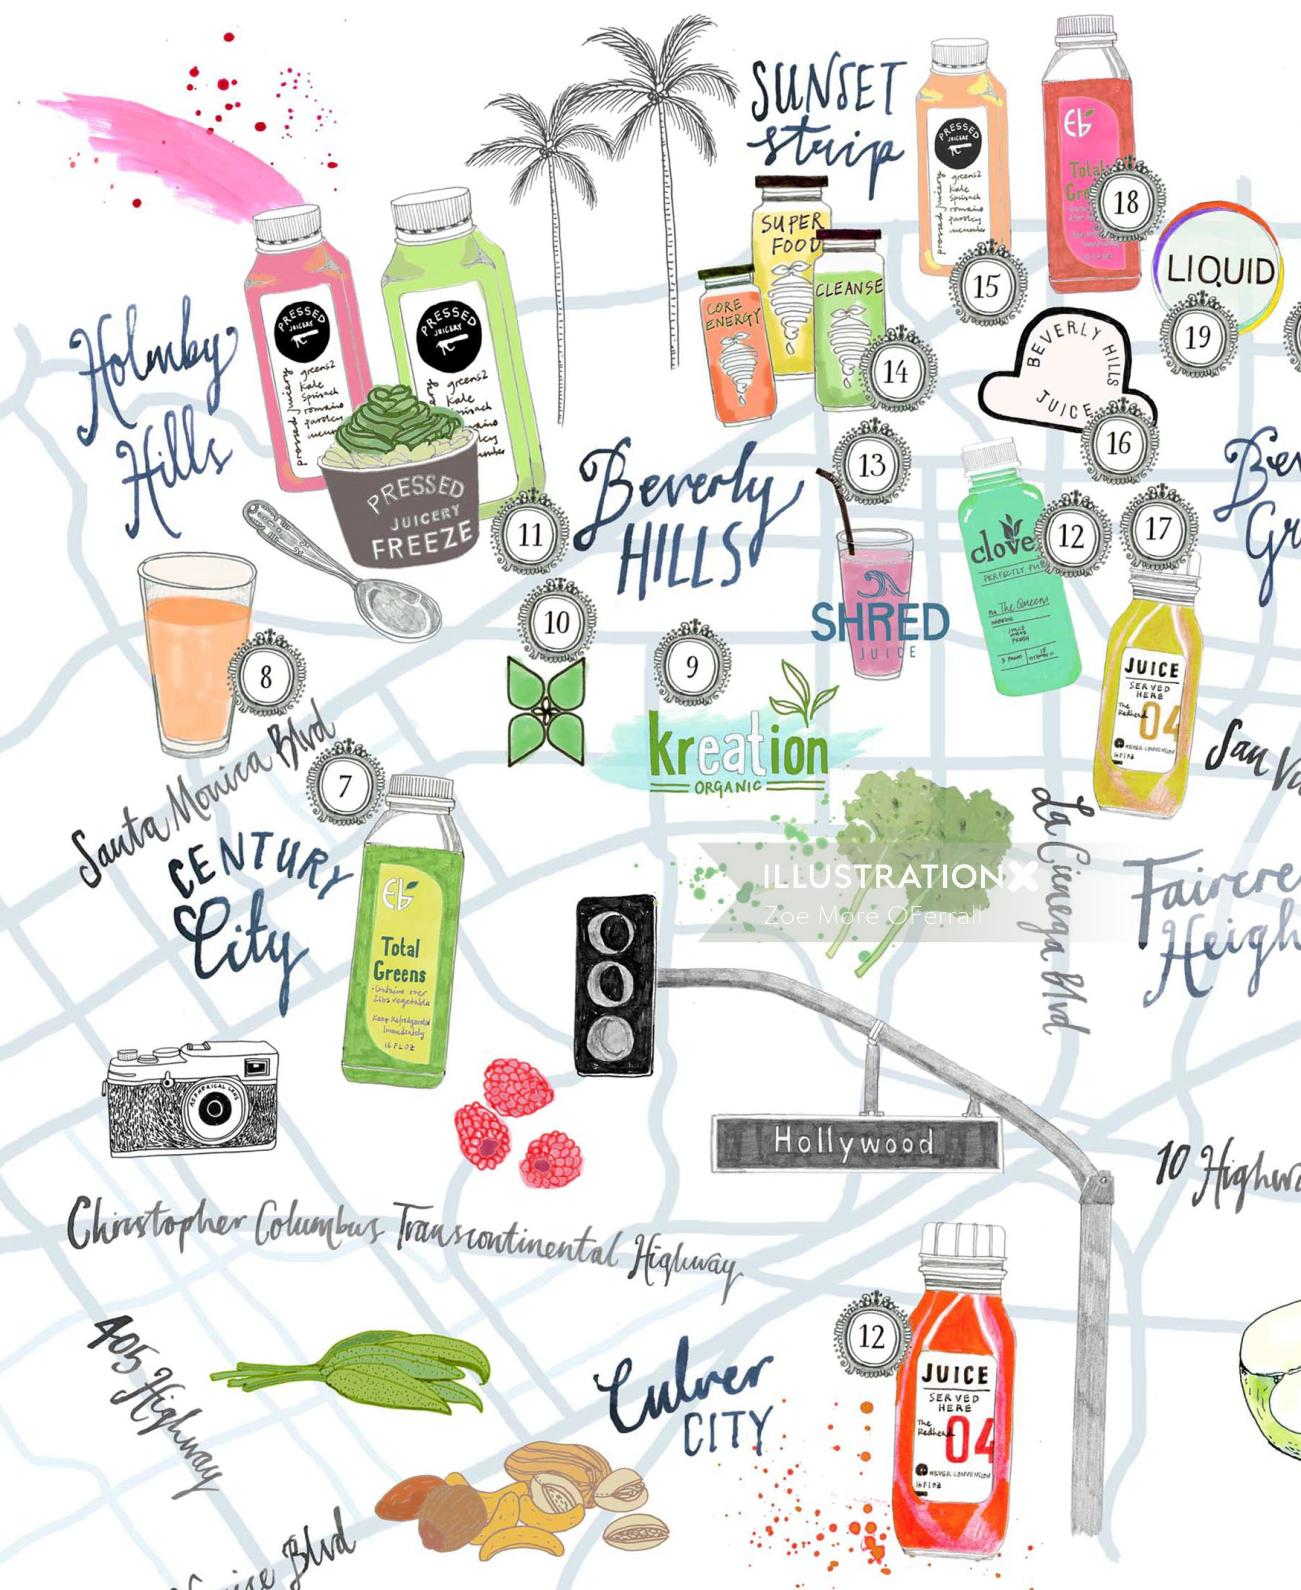 Hollywood map with juices